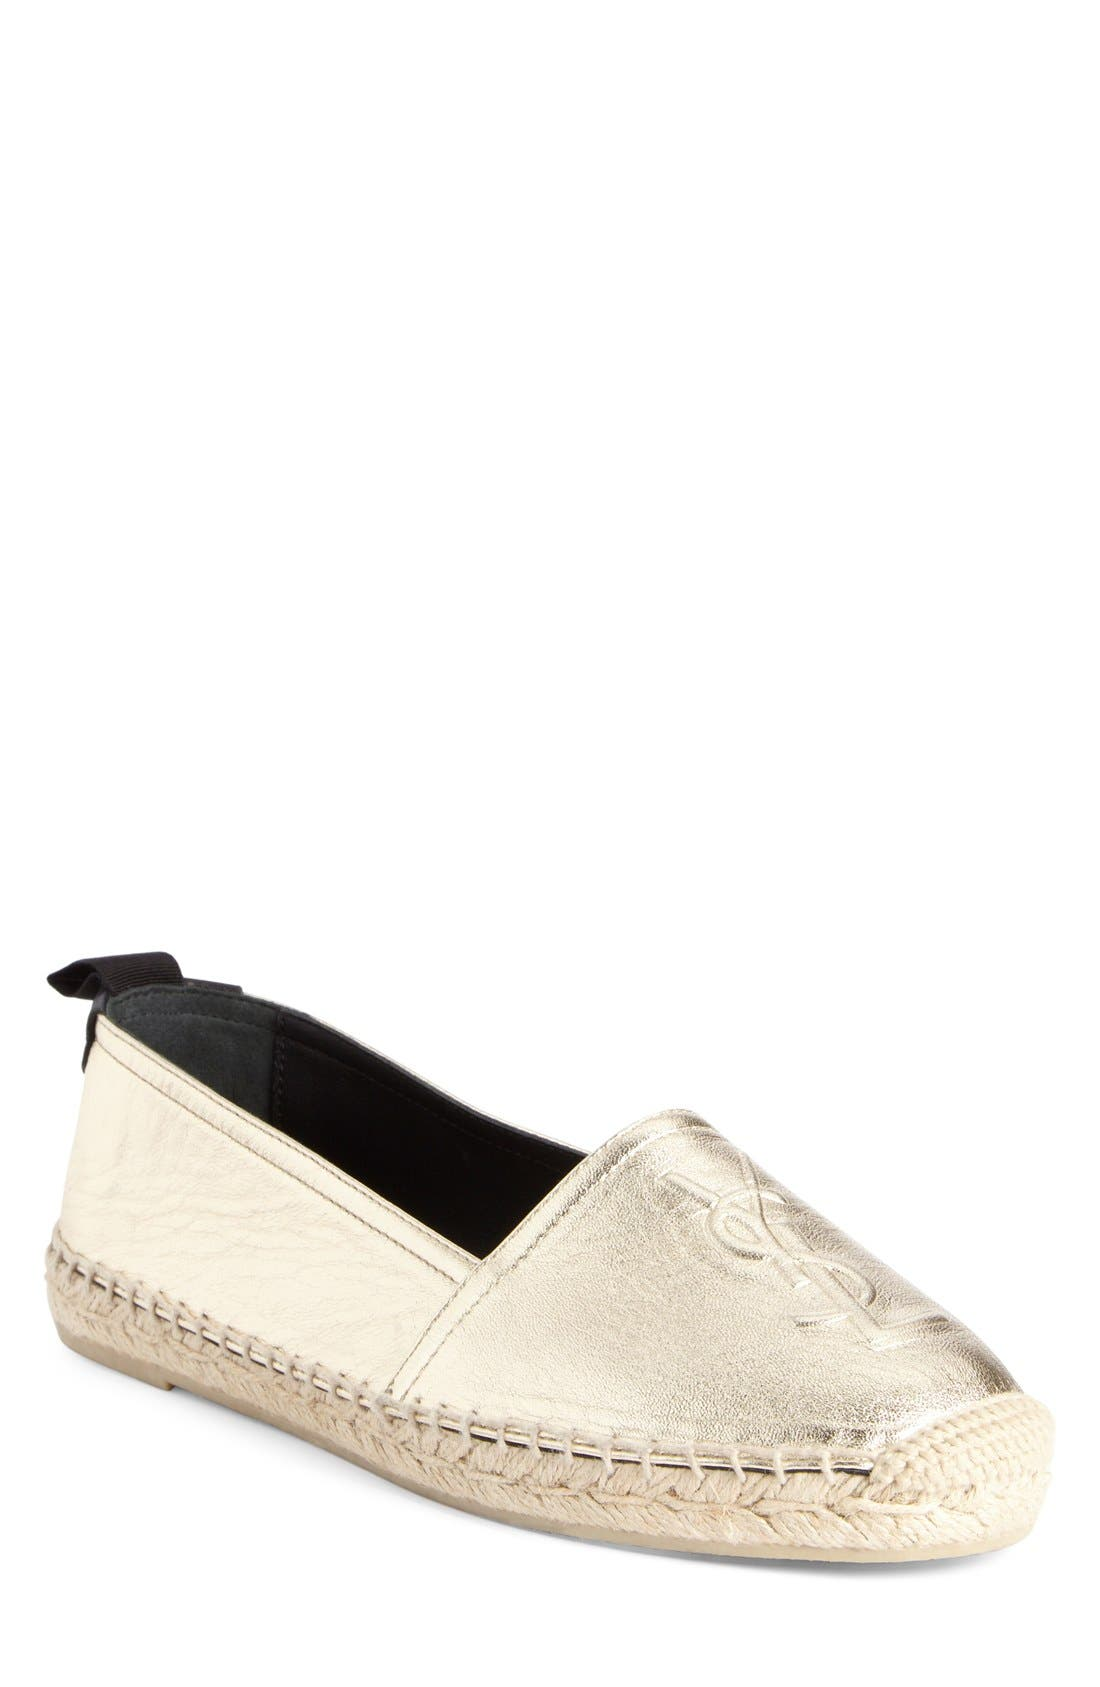 Alternate Image 1 Selected - Saint Laurent Logo Espadrille (Women)